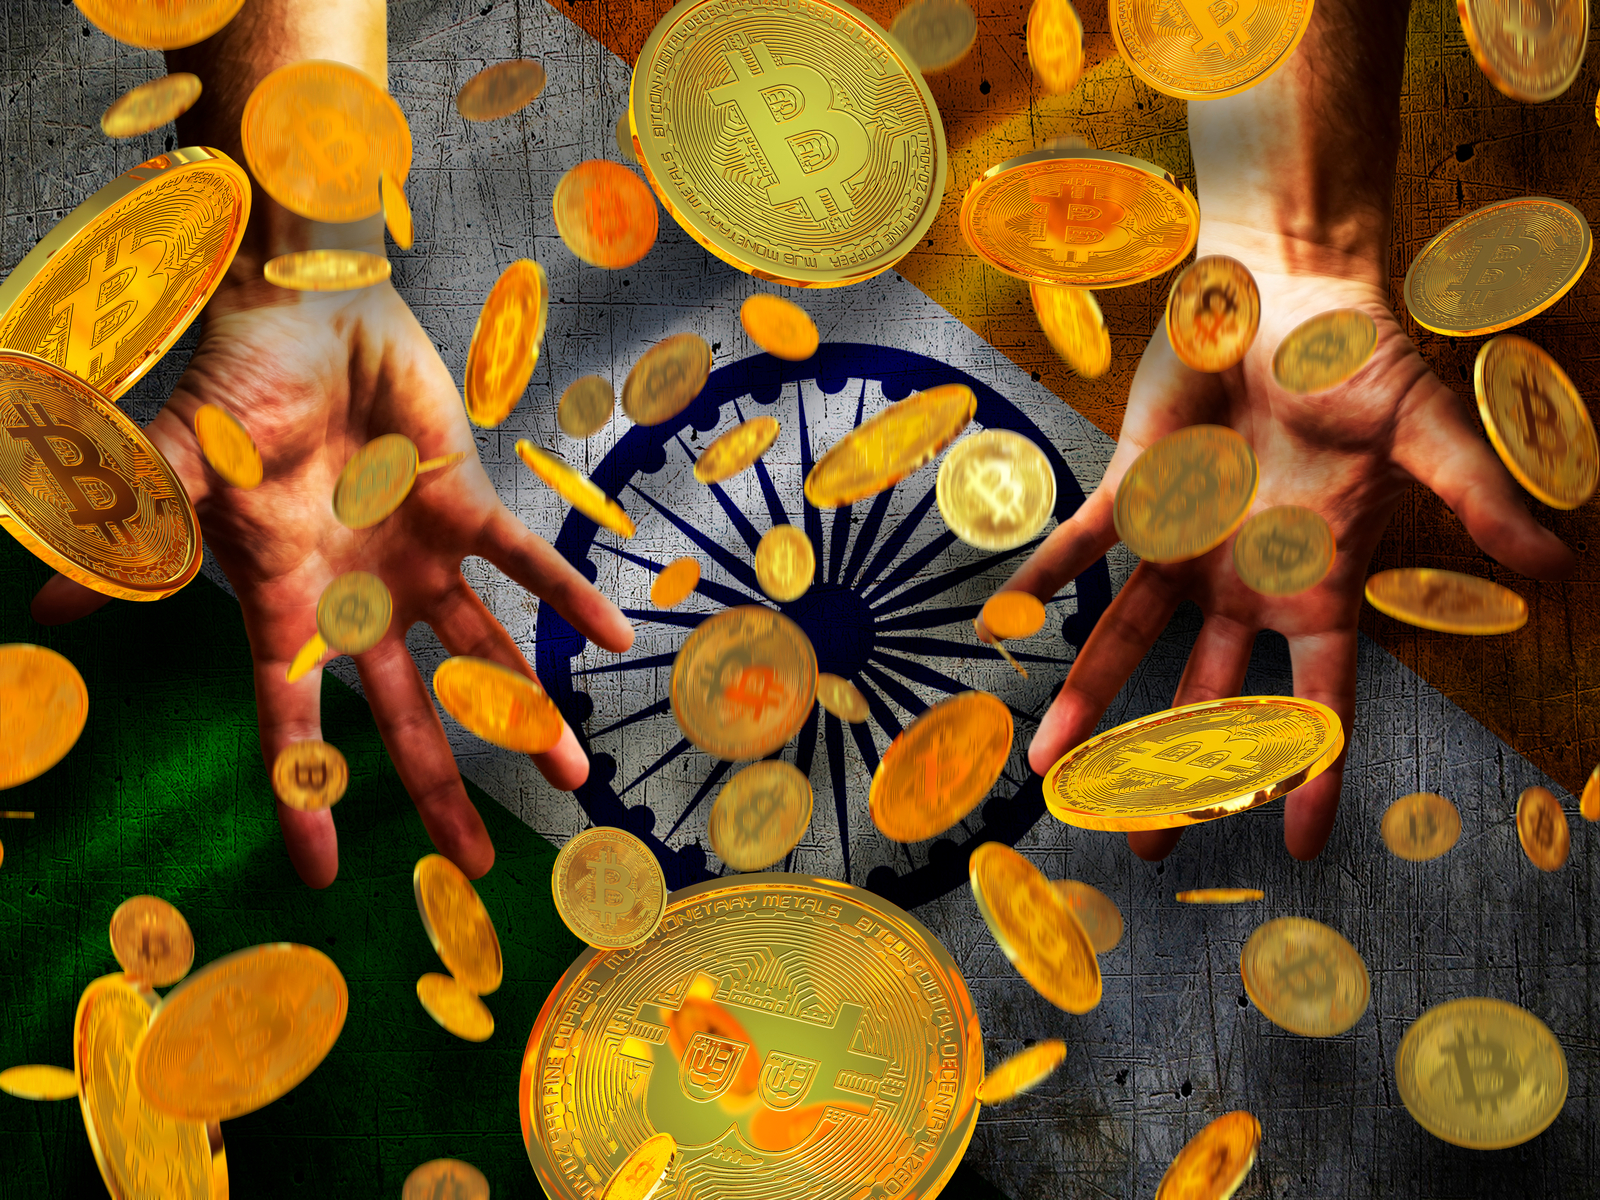 Police in India Arrest Gang Allegedly Involved in Crypto Scam After Investors Were Duped out of Millions With 'Cashcoin'